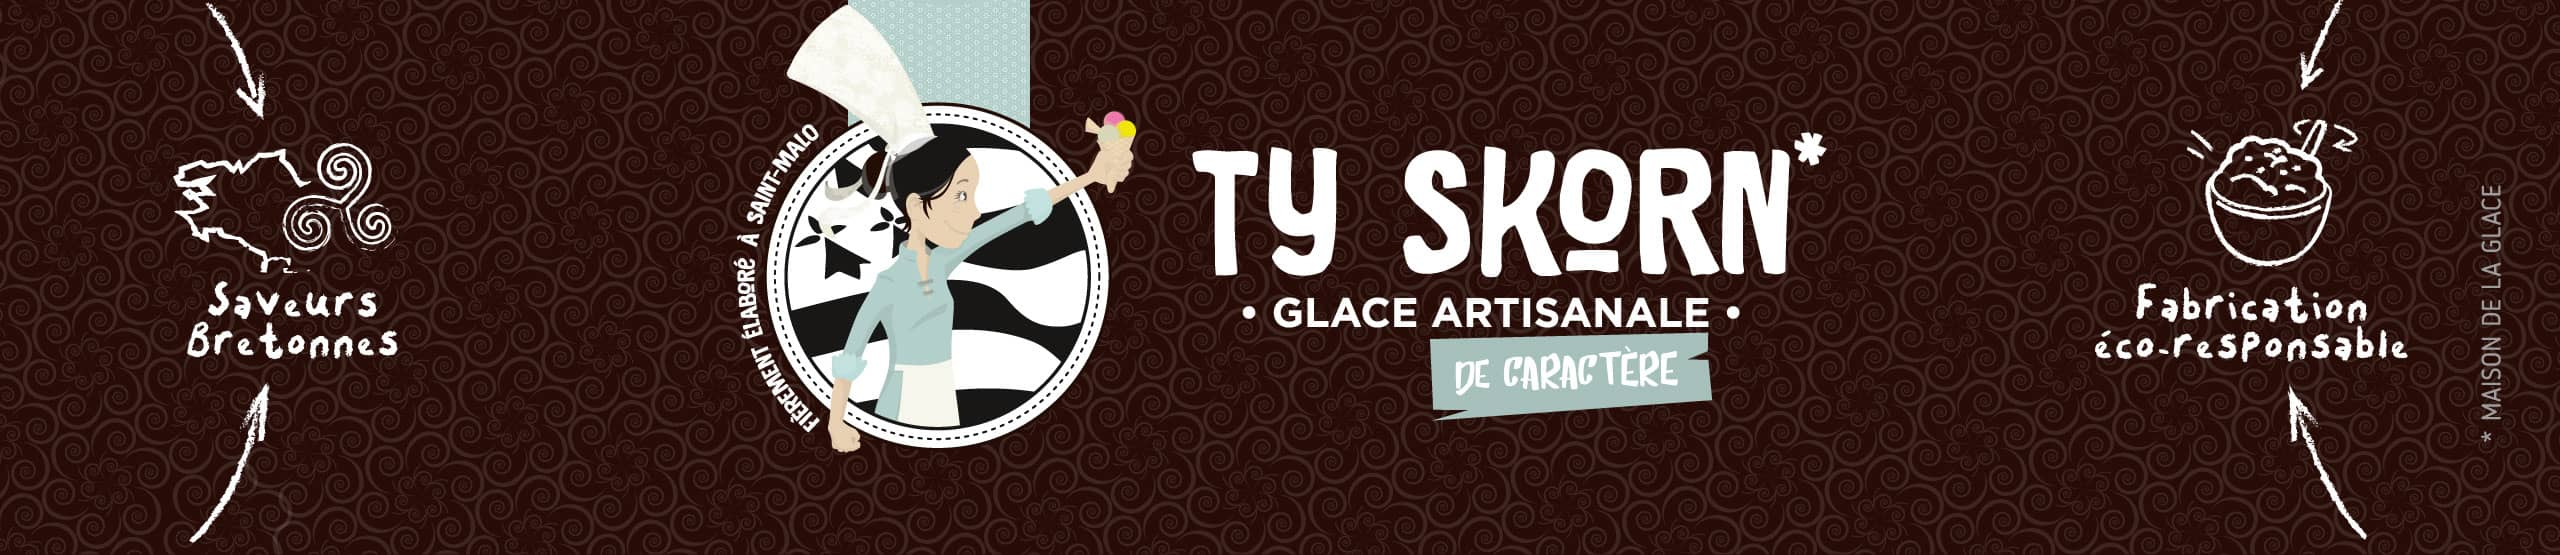 glaces Ty Skorn Saint-Malo